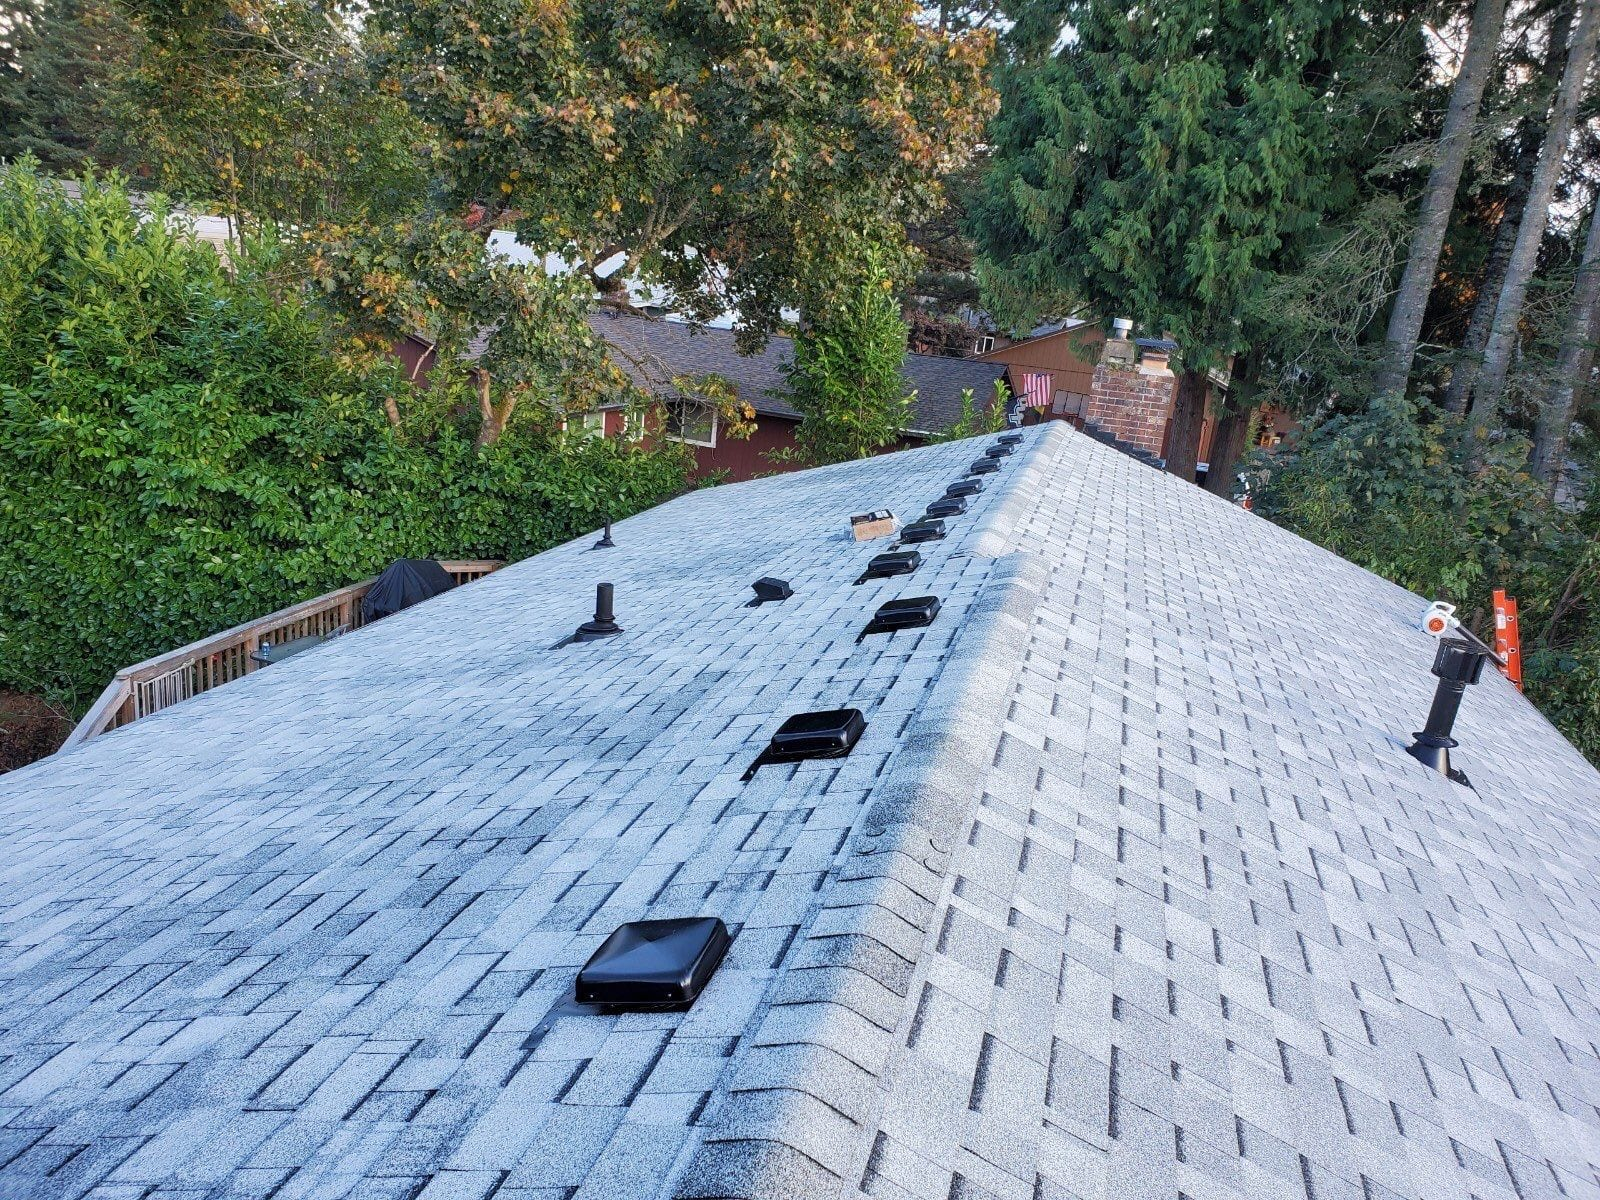 New Malarkey Roof from above in Sandy Oregon